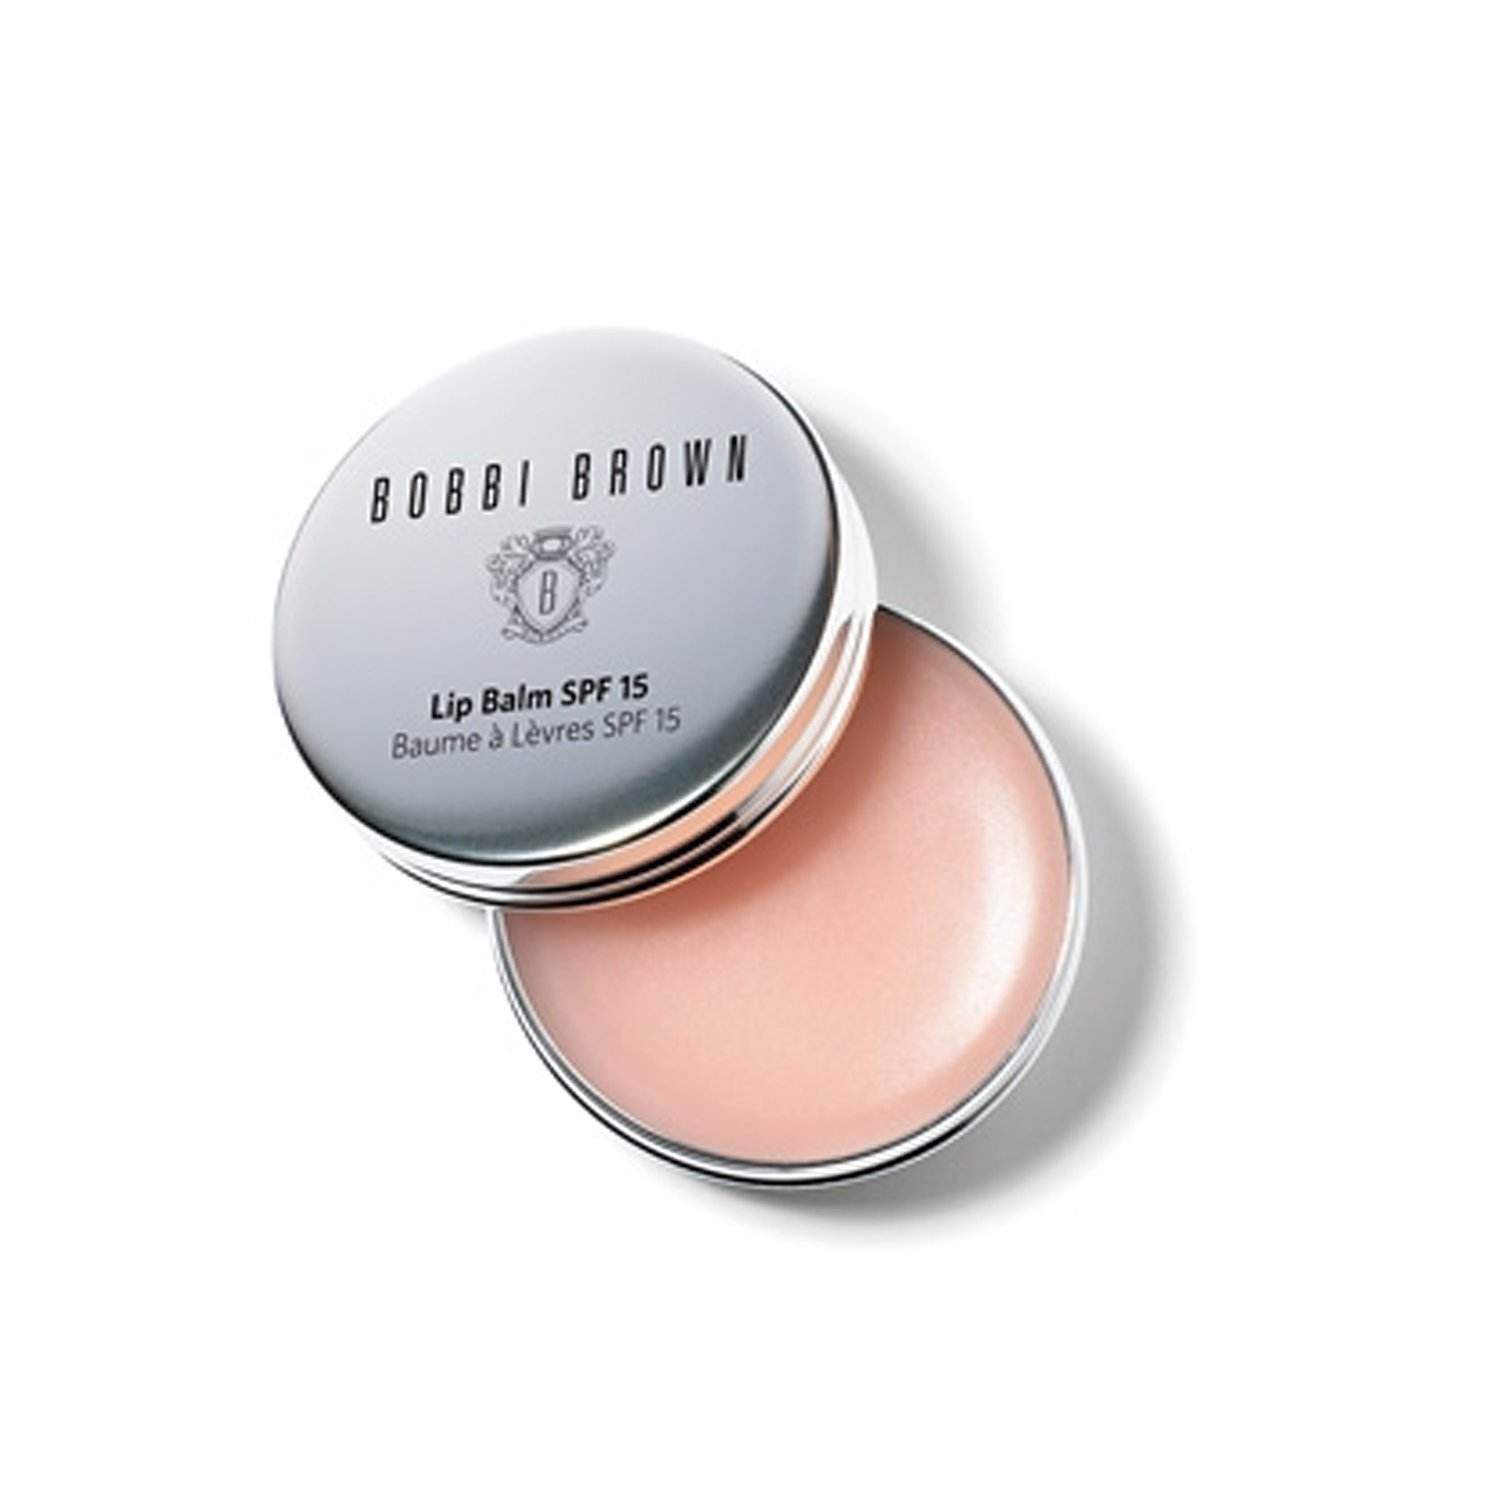 Bobbi Brown Lip Balm spf 15 (lip treatment)